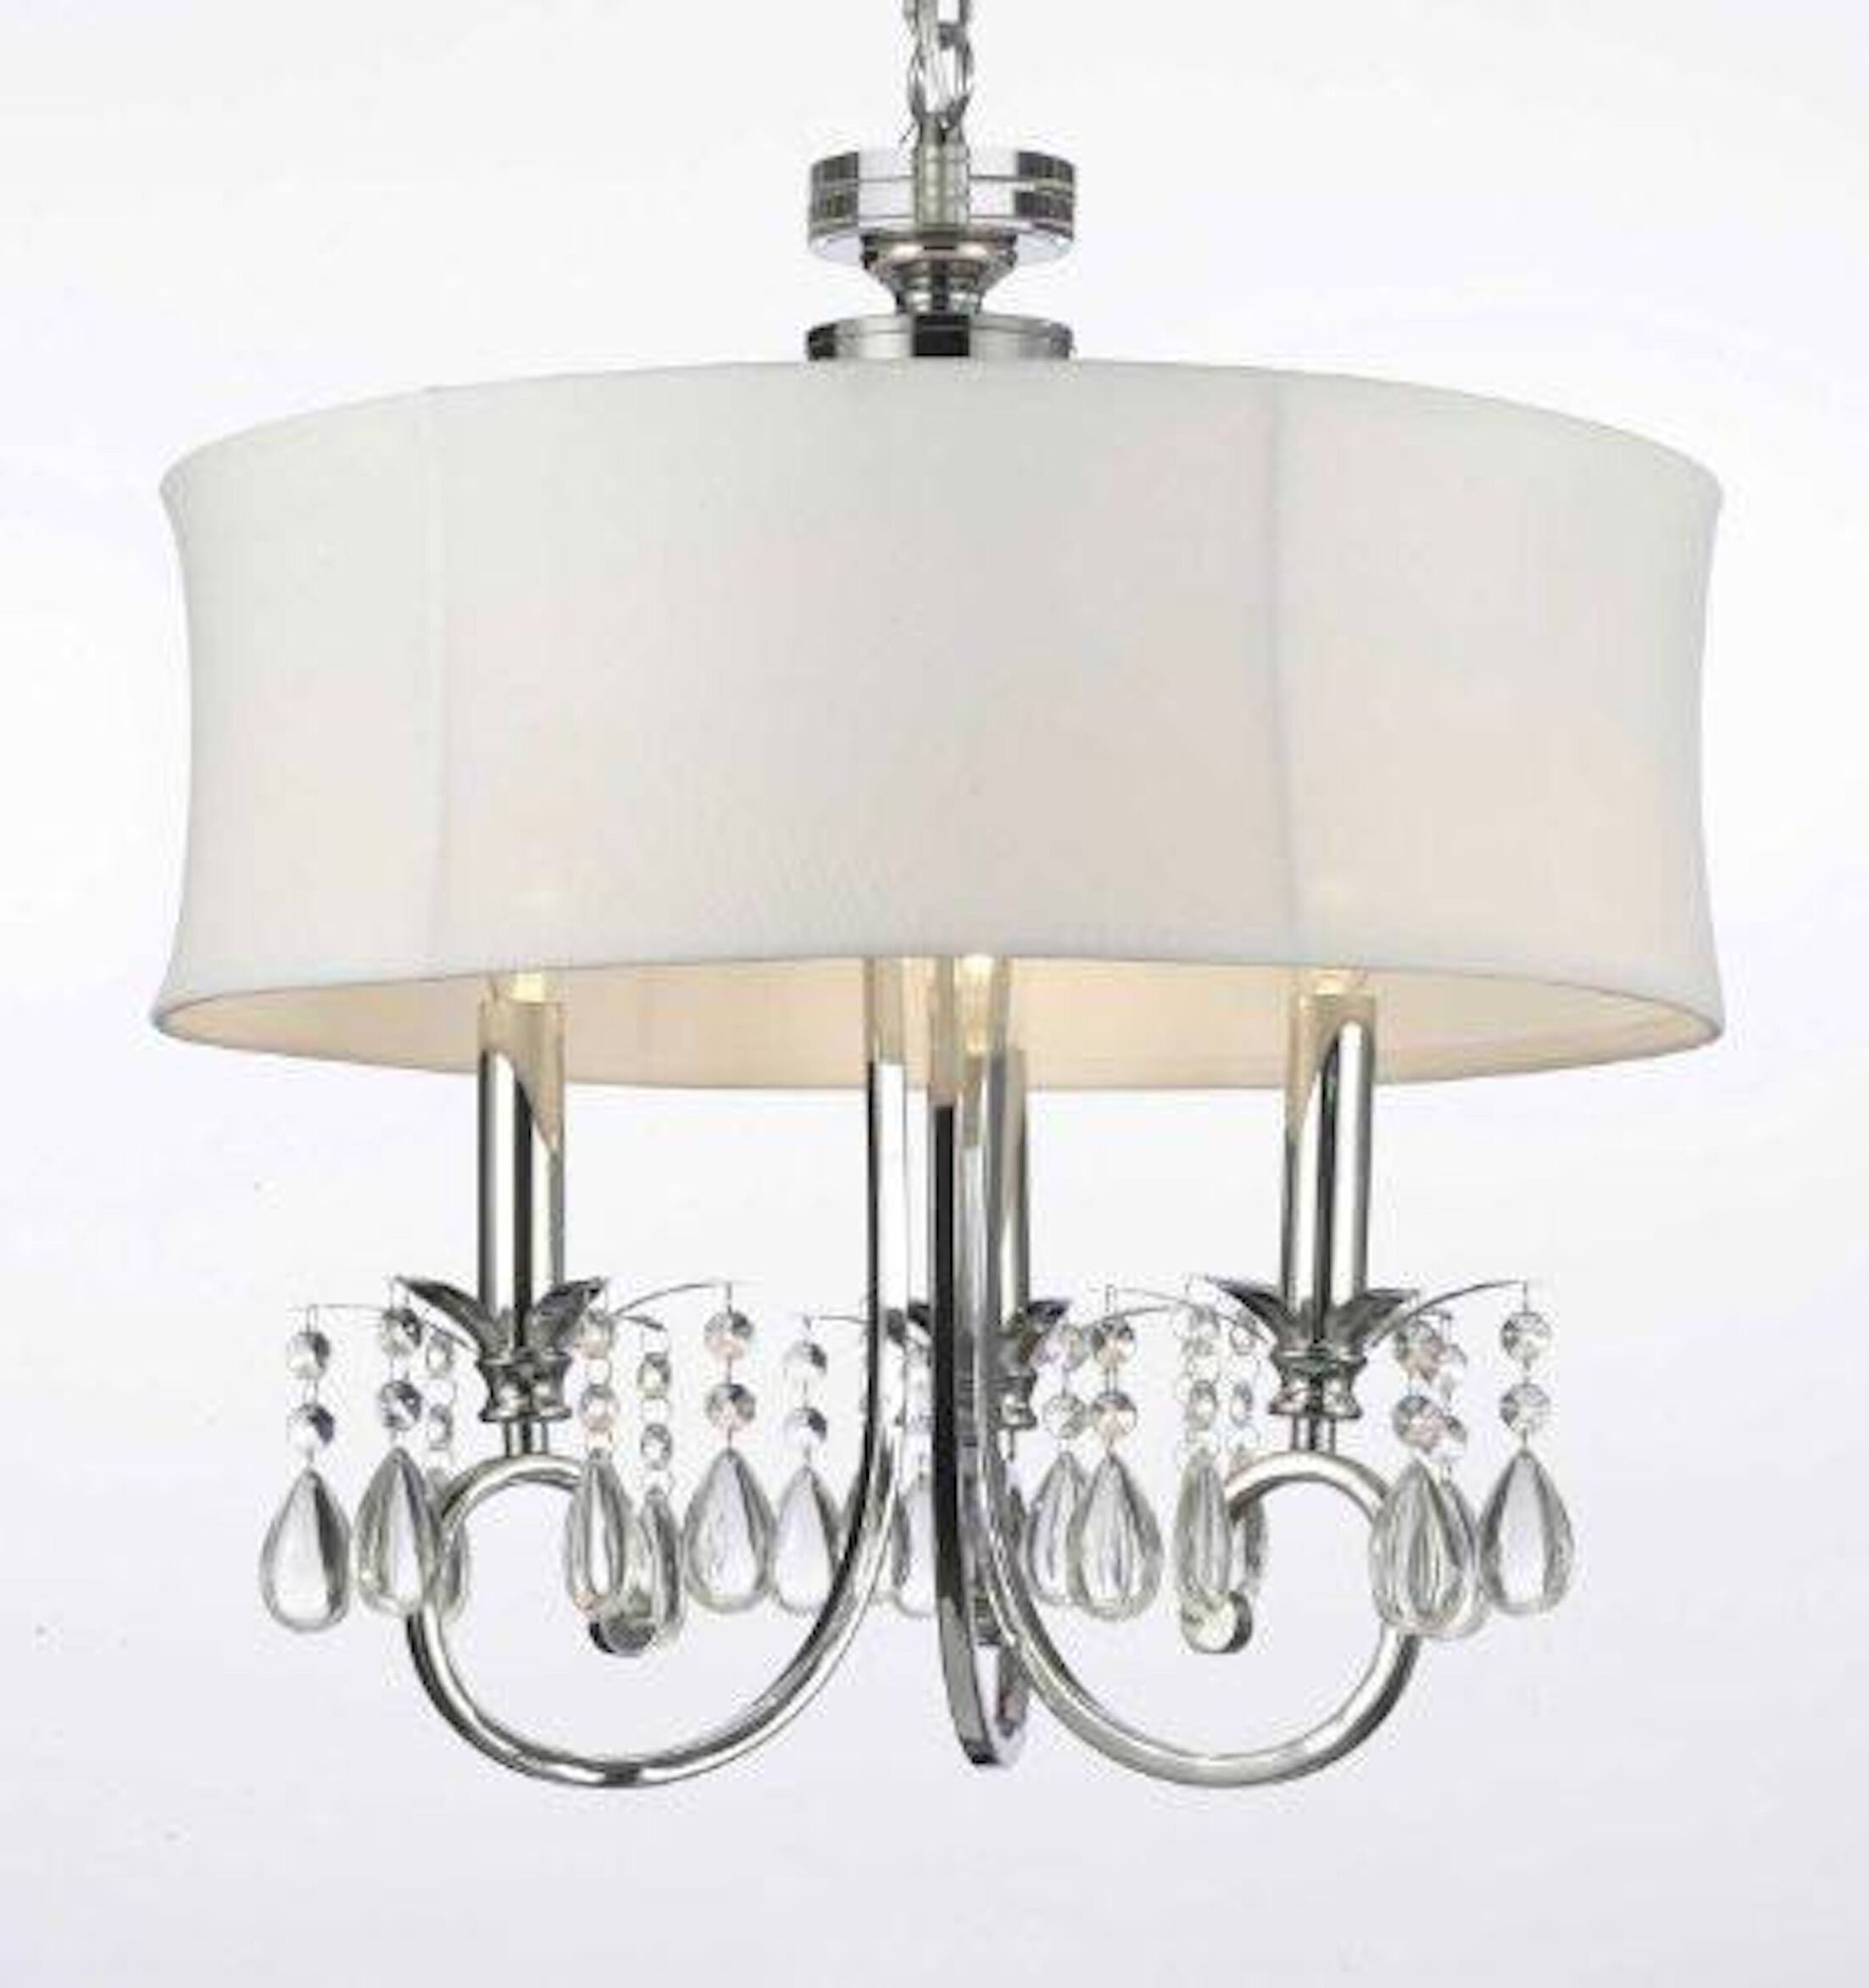 Justis 3-Light Drum Chandelier